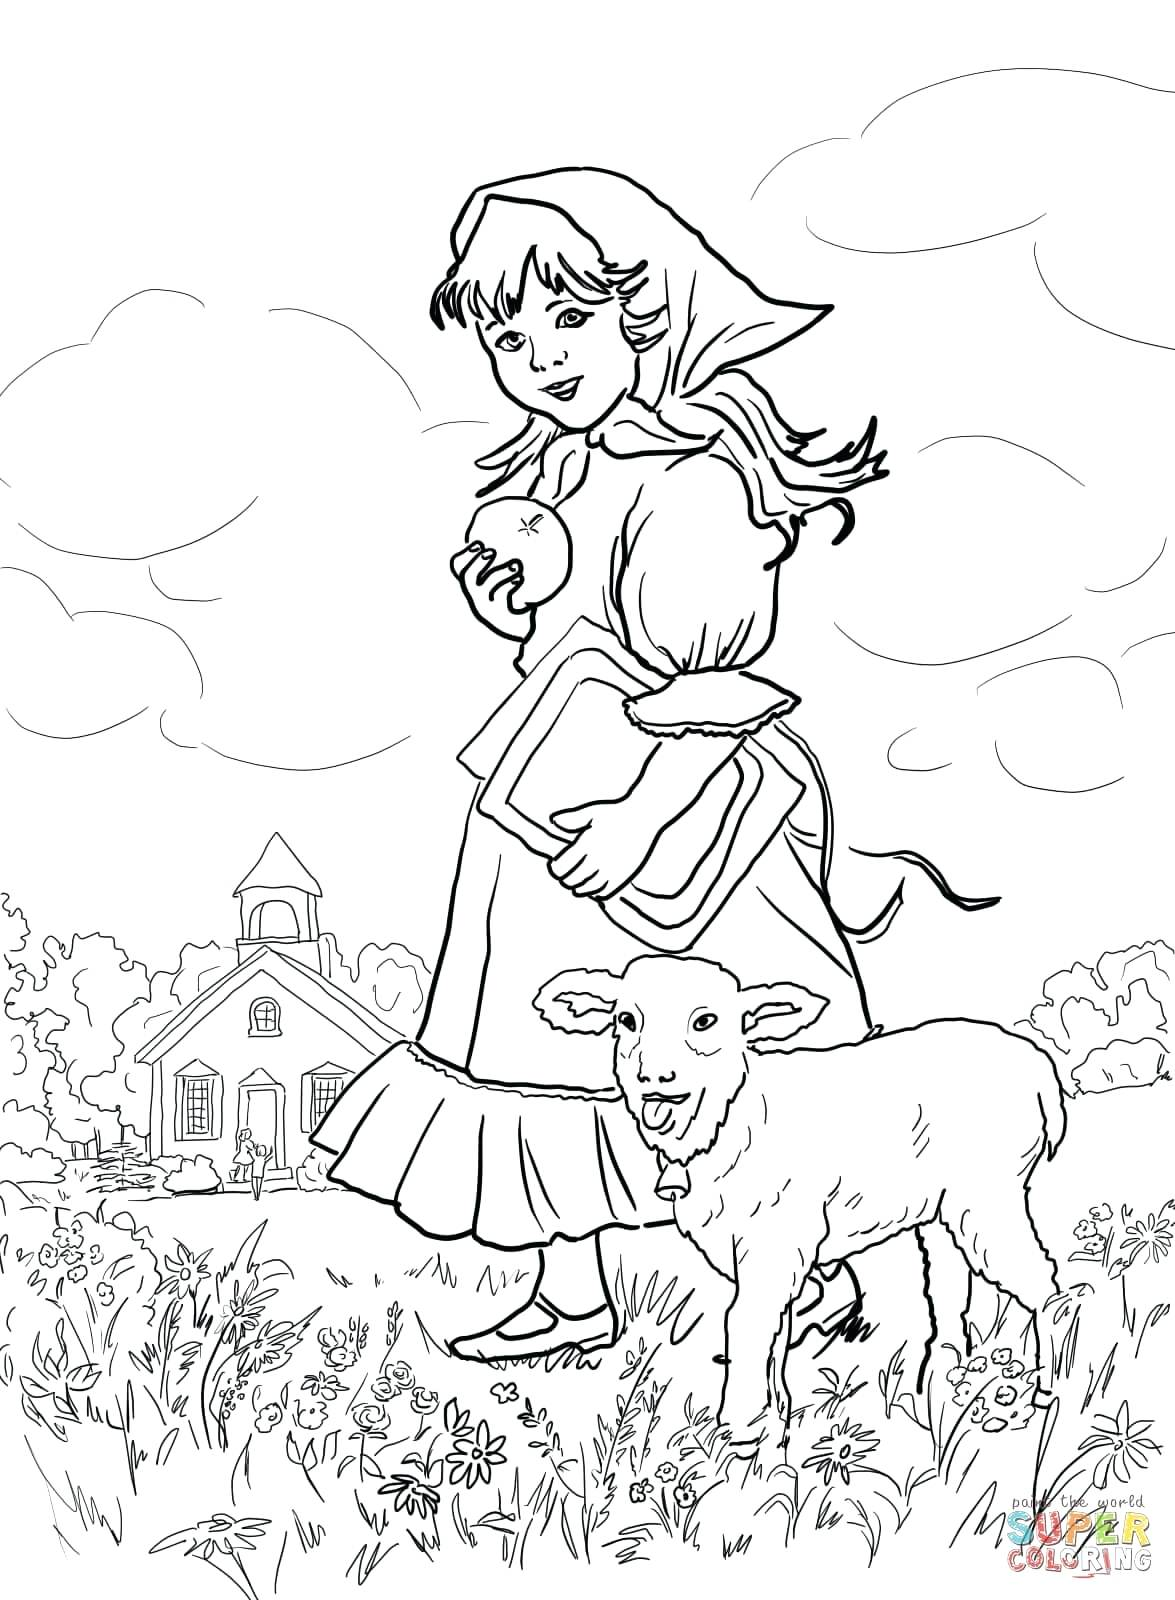 Mother Goose Nursery Rhymes Coloring Pages At Getdrawings Com Free